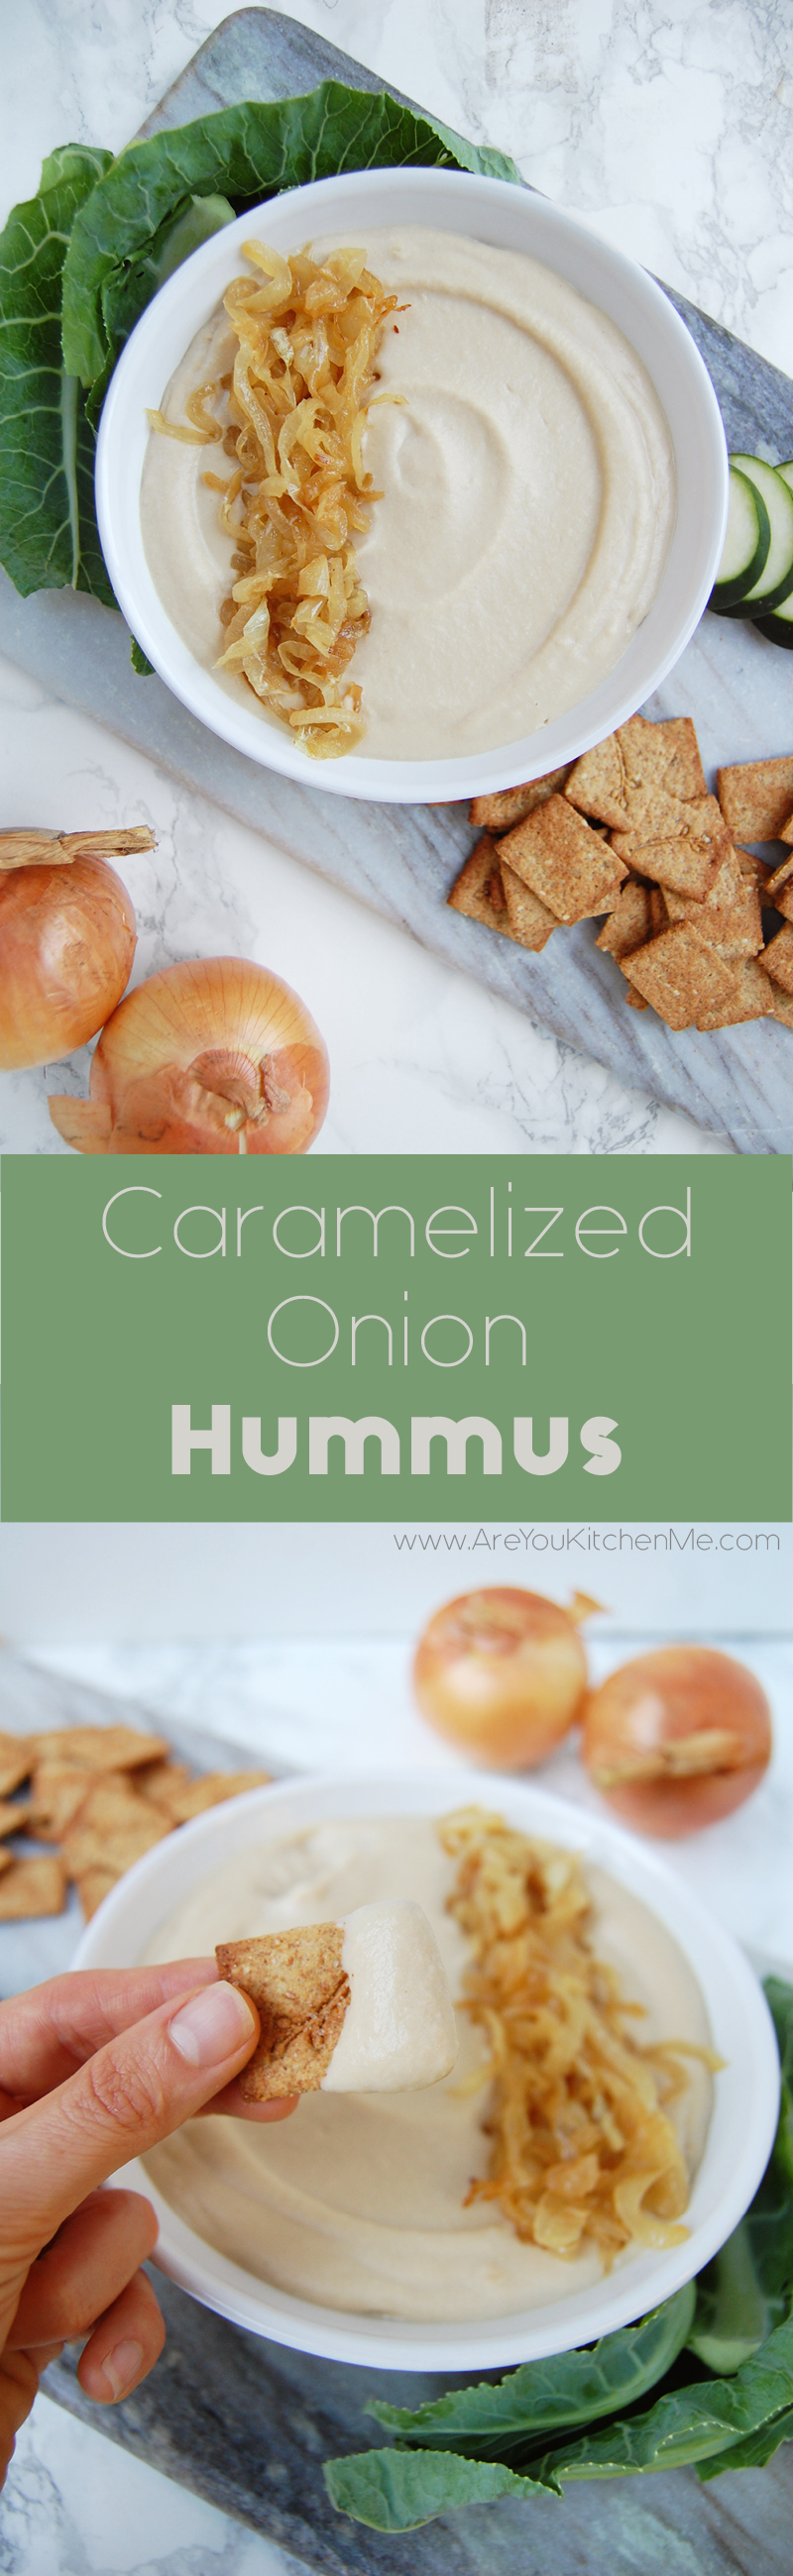 Caramelized Onion Hummus | AreYouKitchenMe.com